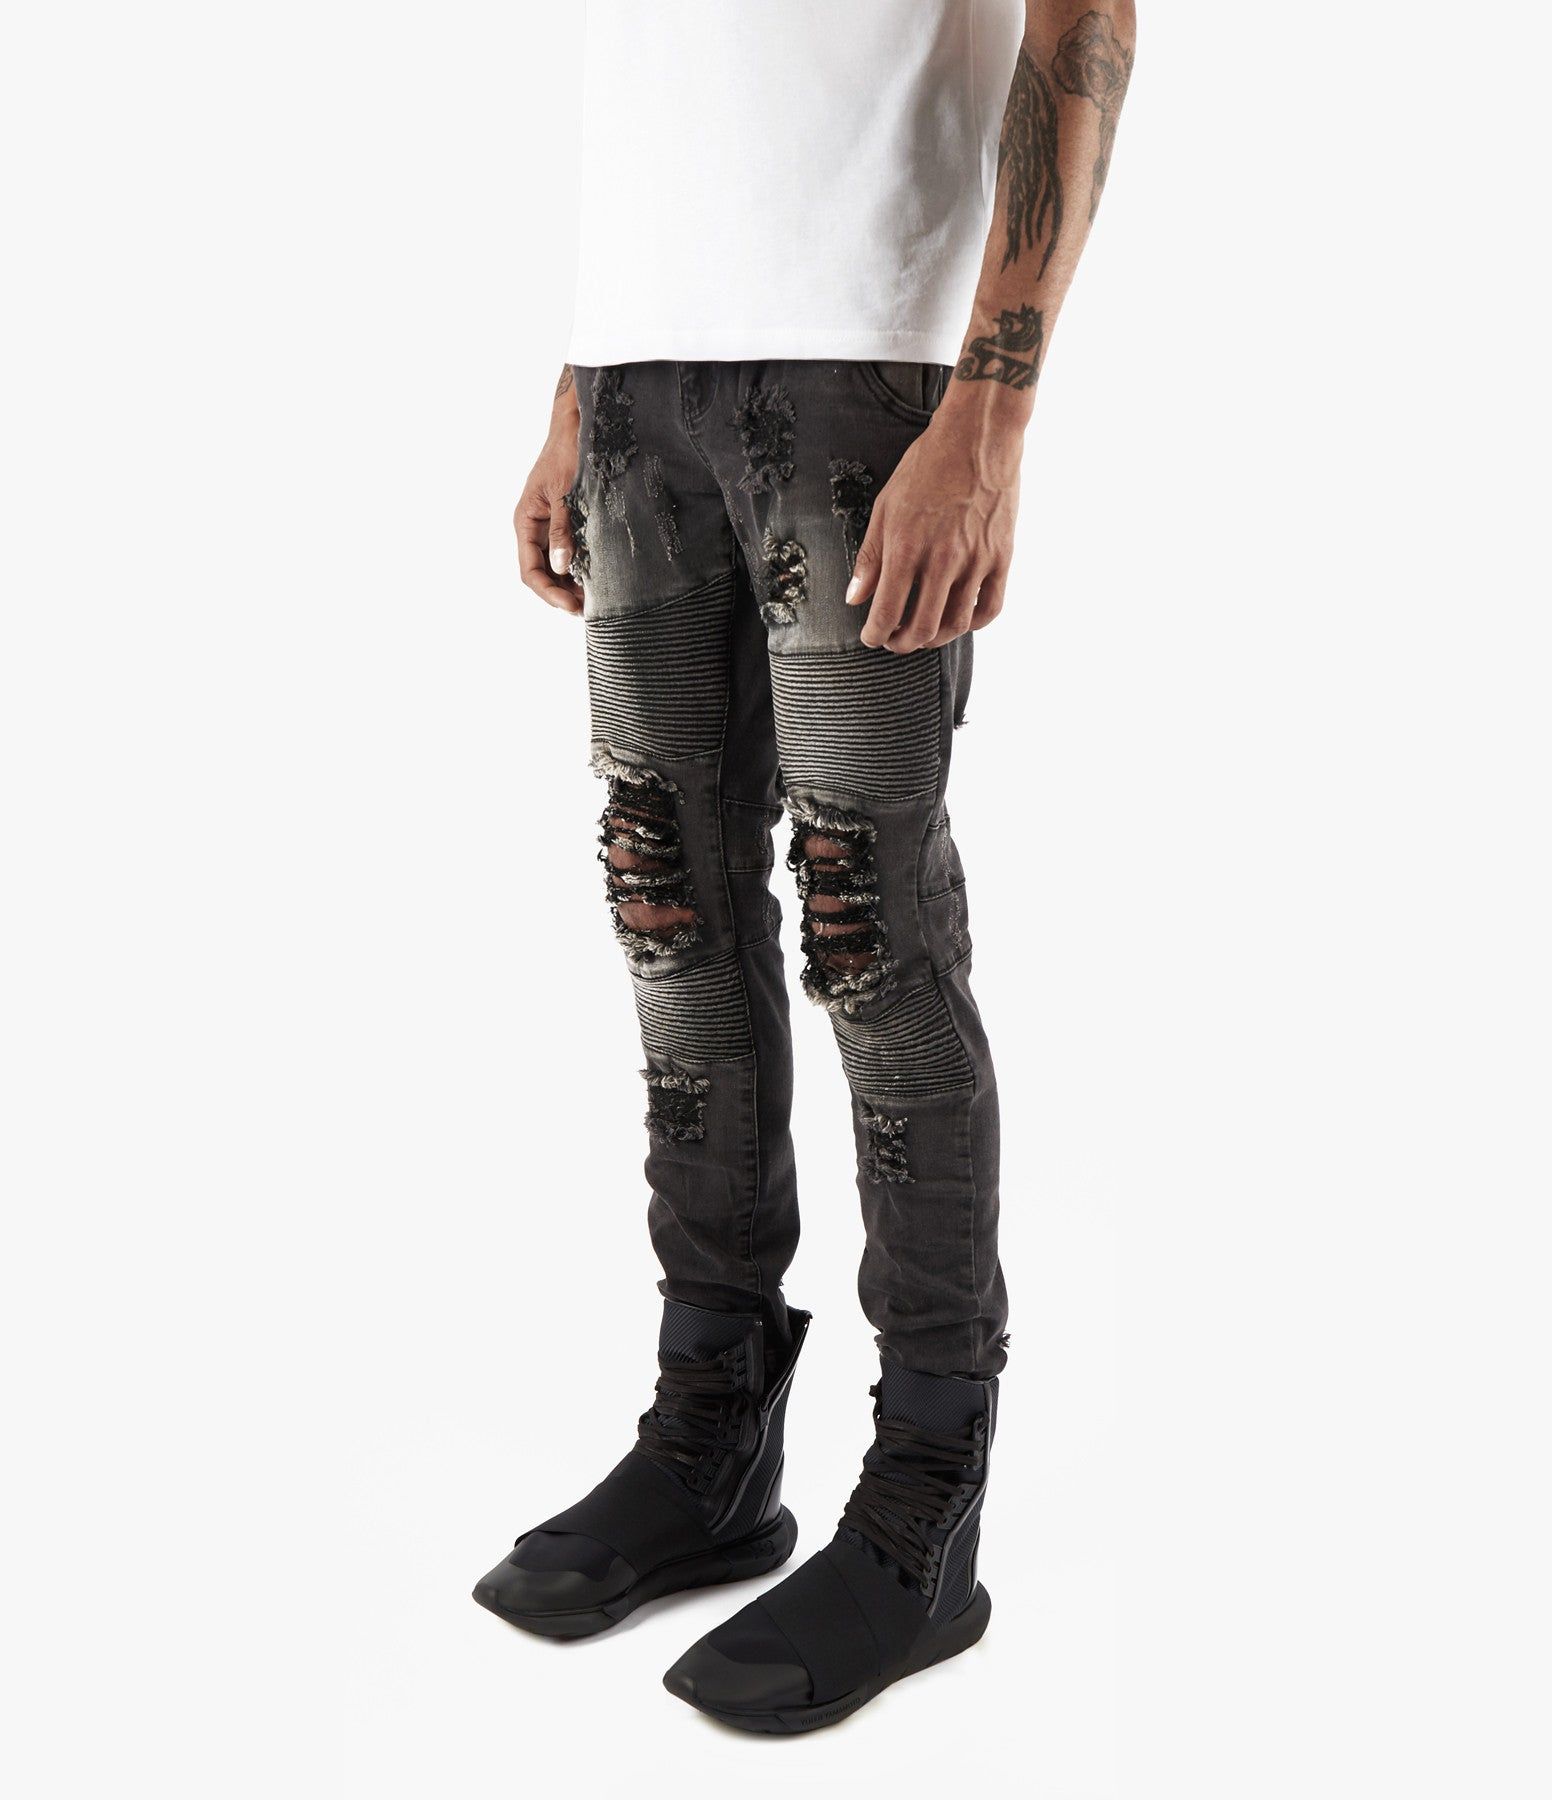 JN152 Distressed Stone Wash Biker Denim - Black - underated london - underatedco - 6